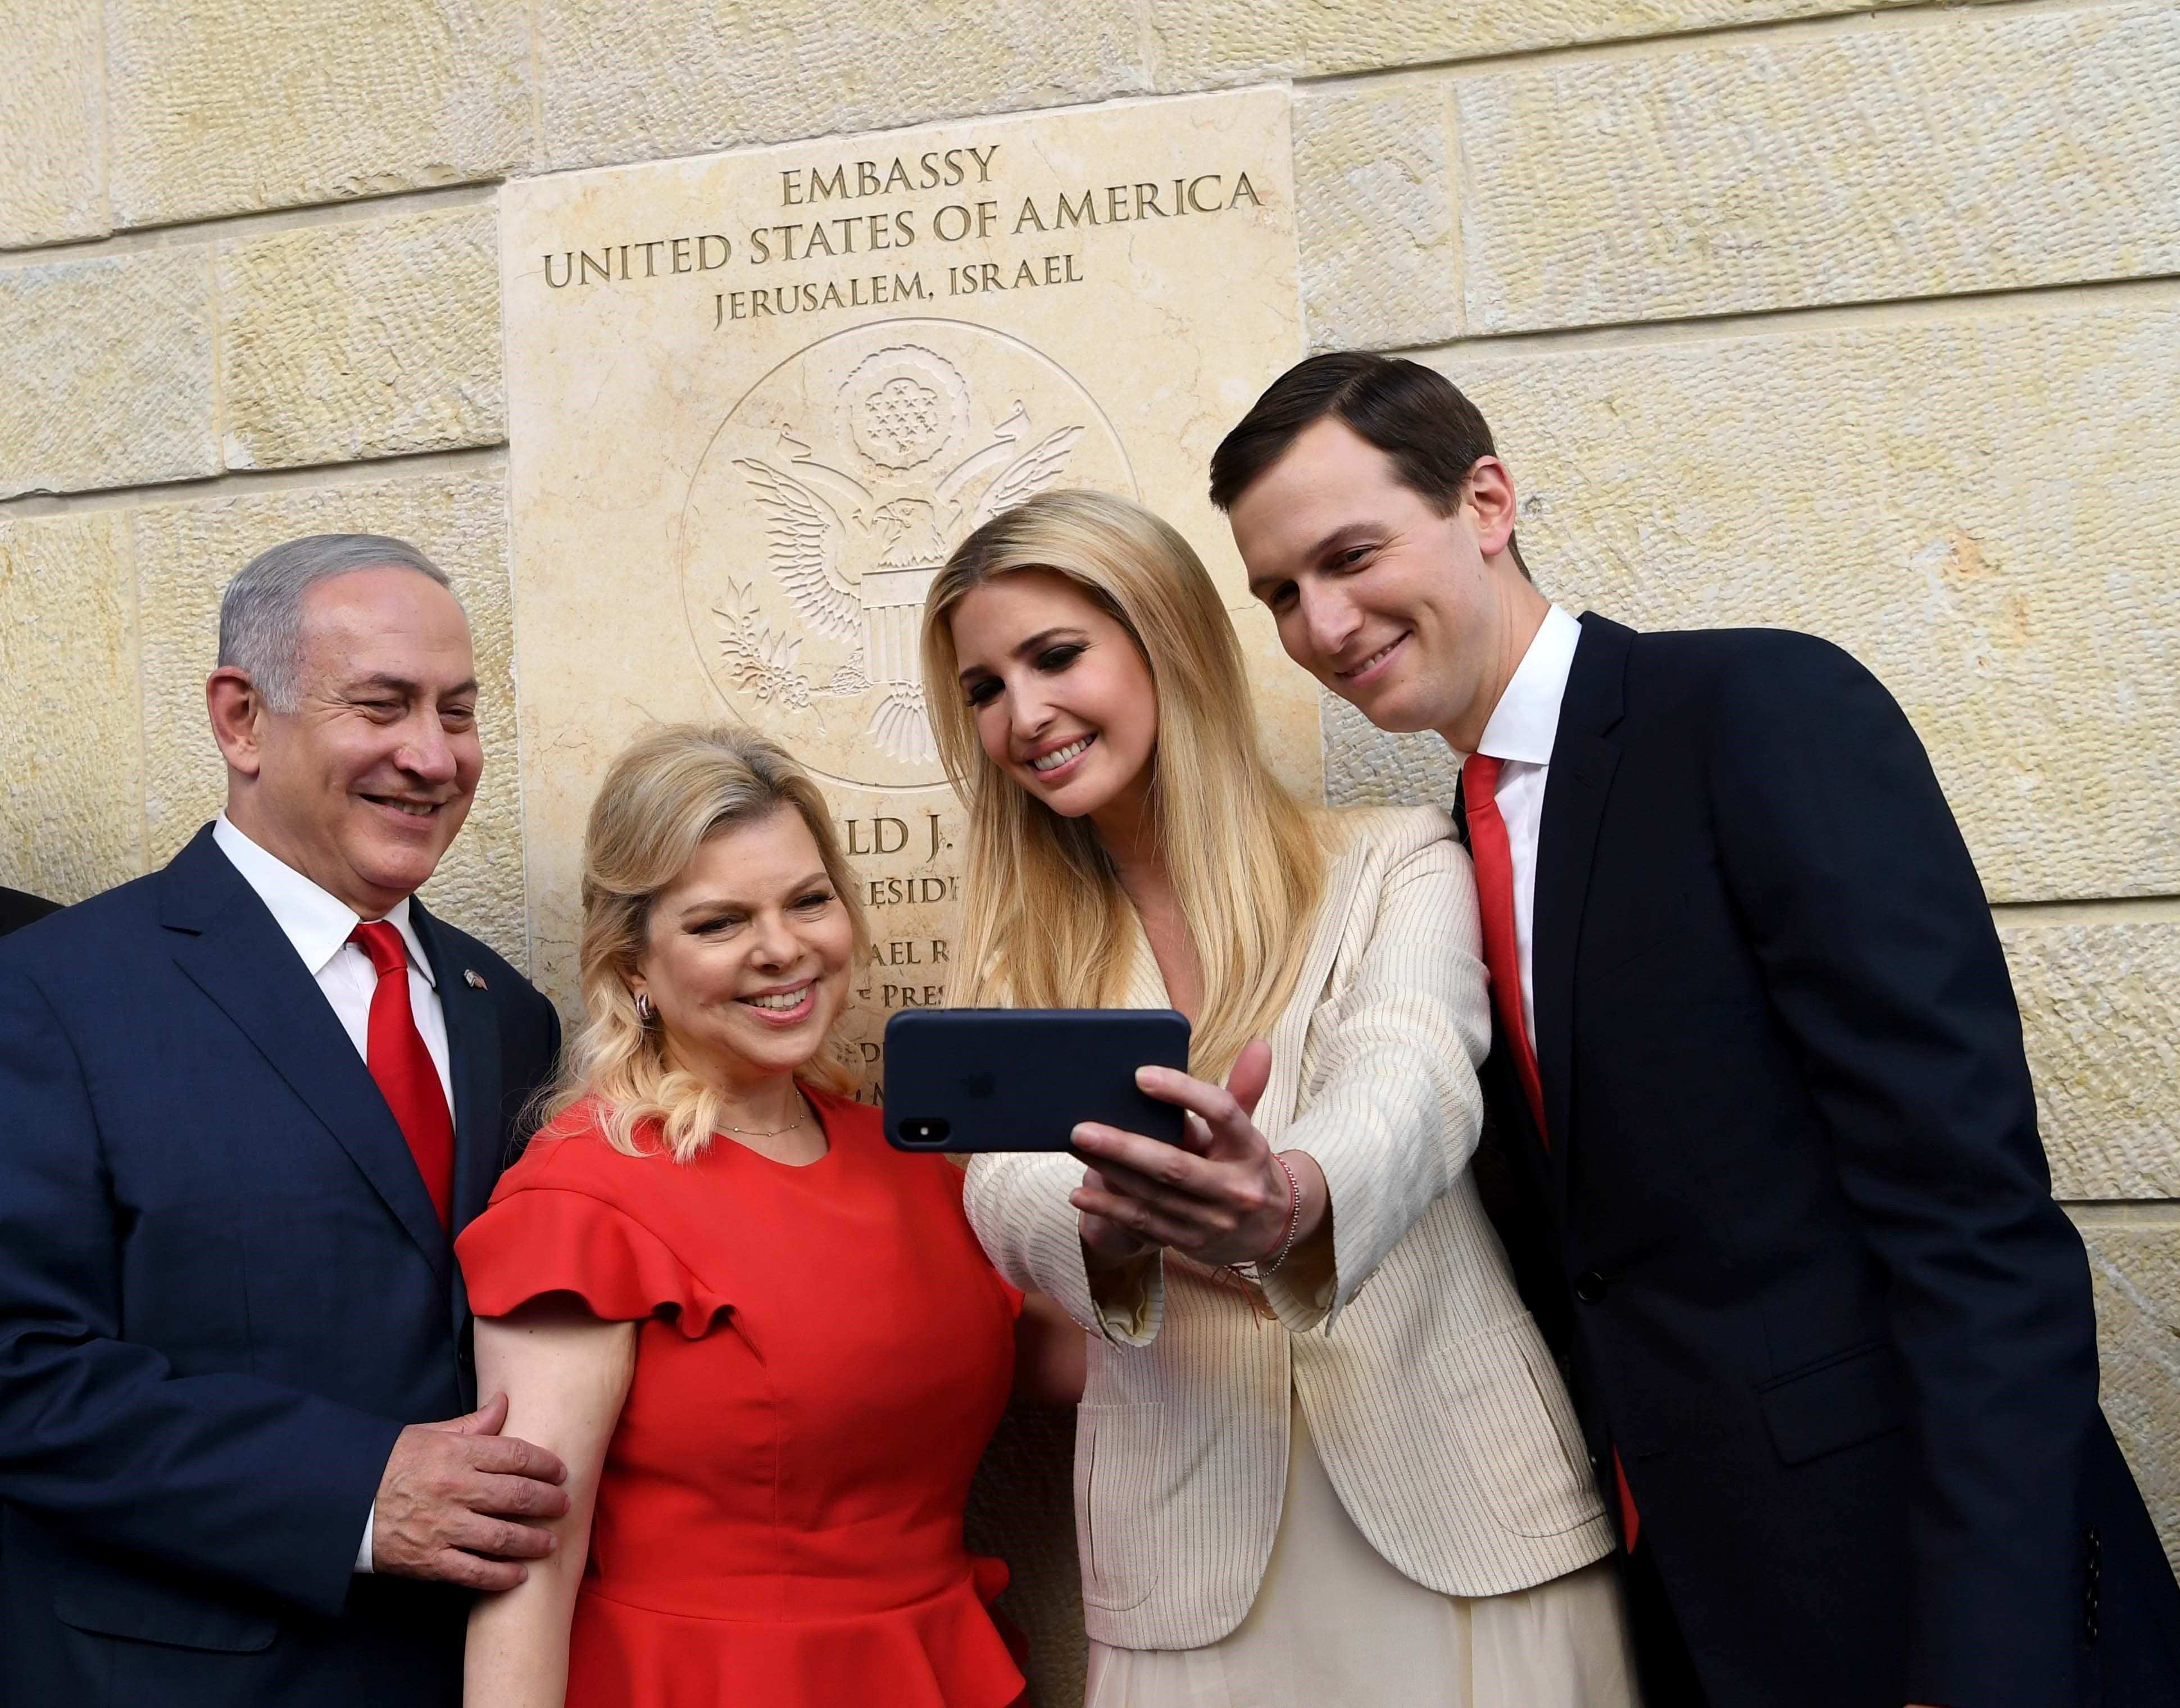 JERUSALEM - MAY 14: (----EDITORIAL USE ONLY  MANDATORY CREDIT - 'ISRAEL PRESS OFFICE / HANDOUT' - NO MARKETING NO ADVERTISING CAMPAIGNS - DISTRIBUTED AS A SERVICE TO CLIENTS----) US President's daughter Ivanka Trump (left 3) Israel Prime Minister's wife Sara Netanyahu (left 2), Donald Trump's son-in-law and Senior Advisor Jared Kushner (R) and Israel's Prime Minister Benjamin Netanyahu (L) attend the opening of the US embassy in Jerusalem on May 14, 2018.  (Photo by Israel Press Office /Handout/Anadolu Agency/Getty Images)